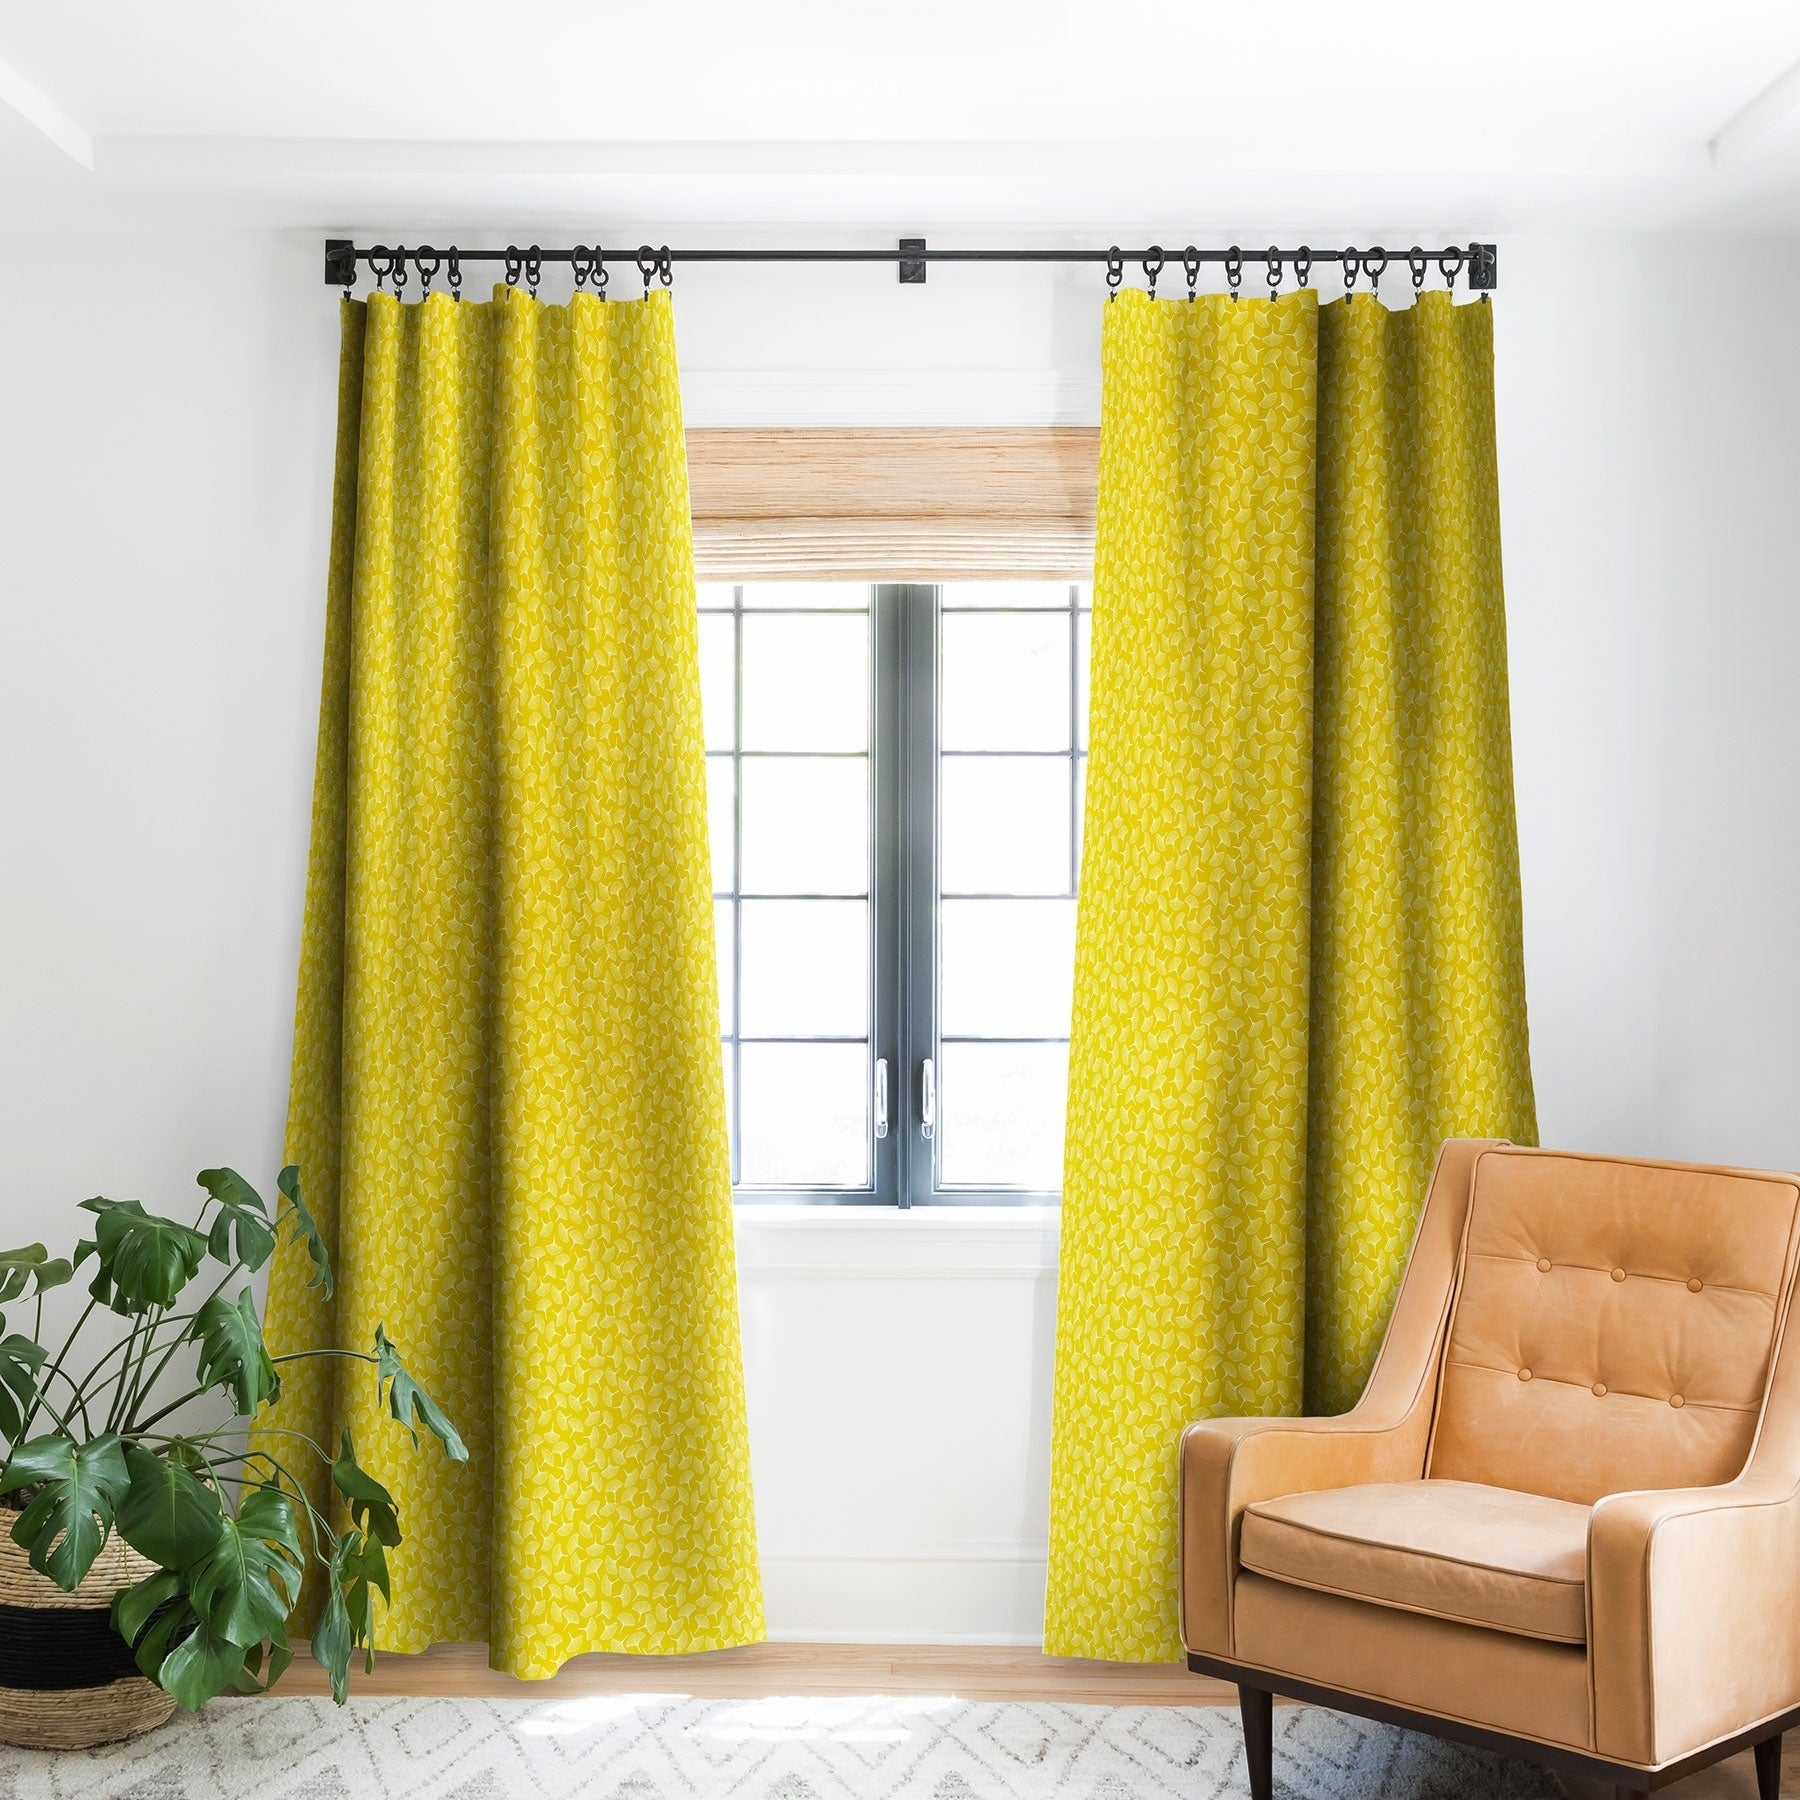 Shop Deny Designs Ginkgo Away With Me Yellow Blackout Curtain